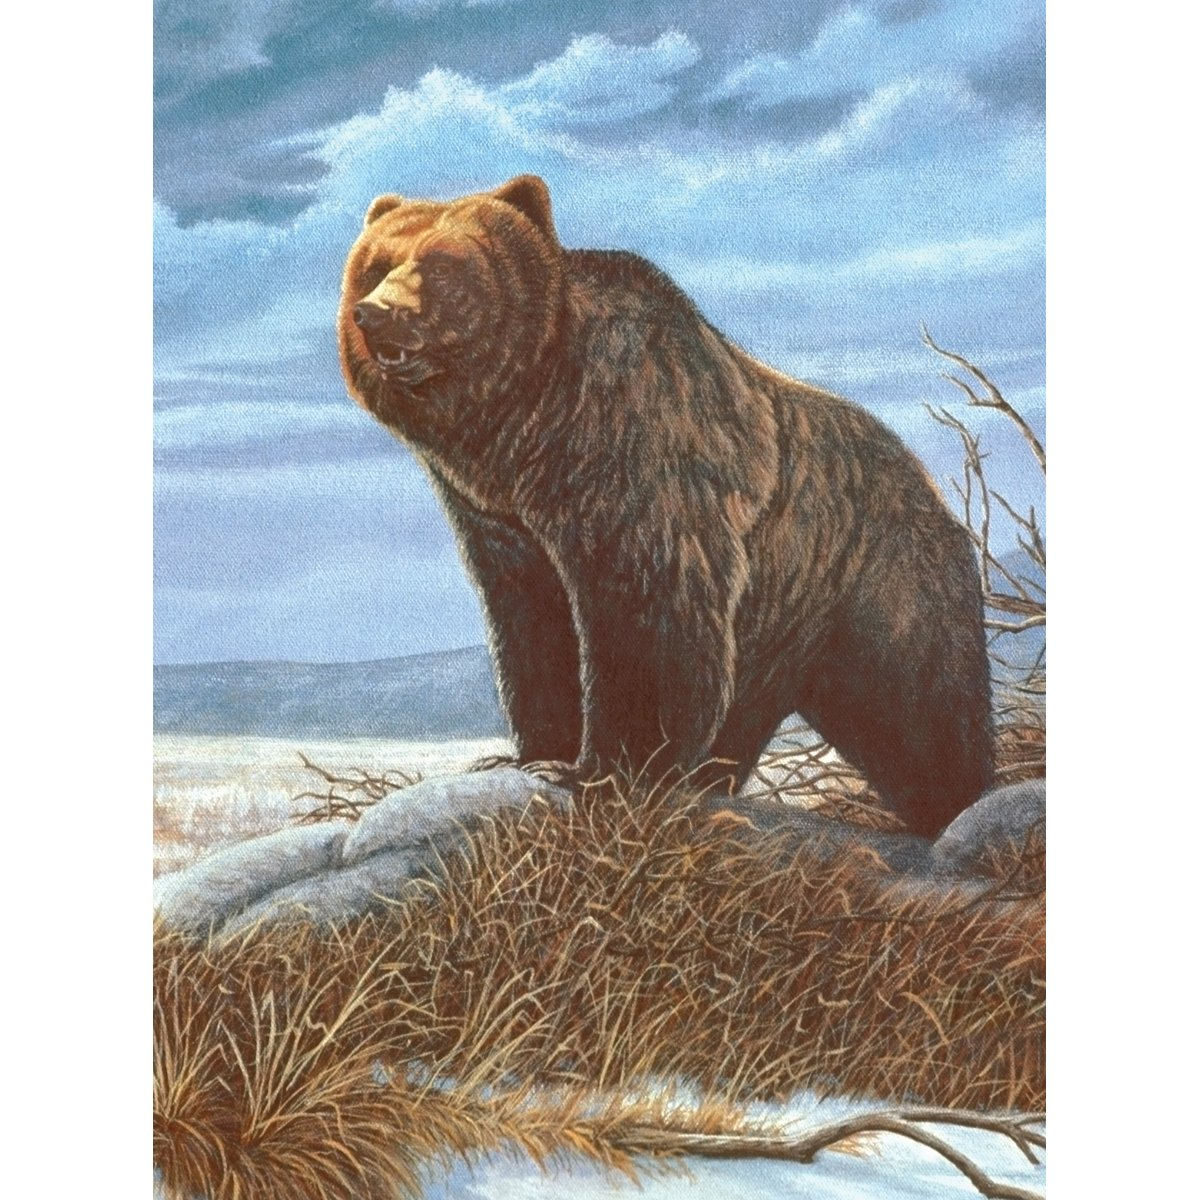 Royal Brush 8.75 by 11.75-Inch Junior Paint by Number Kit, Small, Grizzly Bear PJS-82